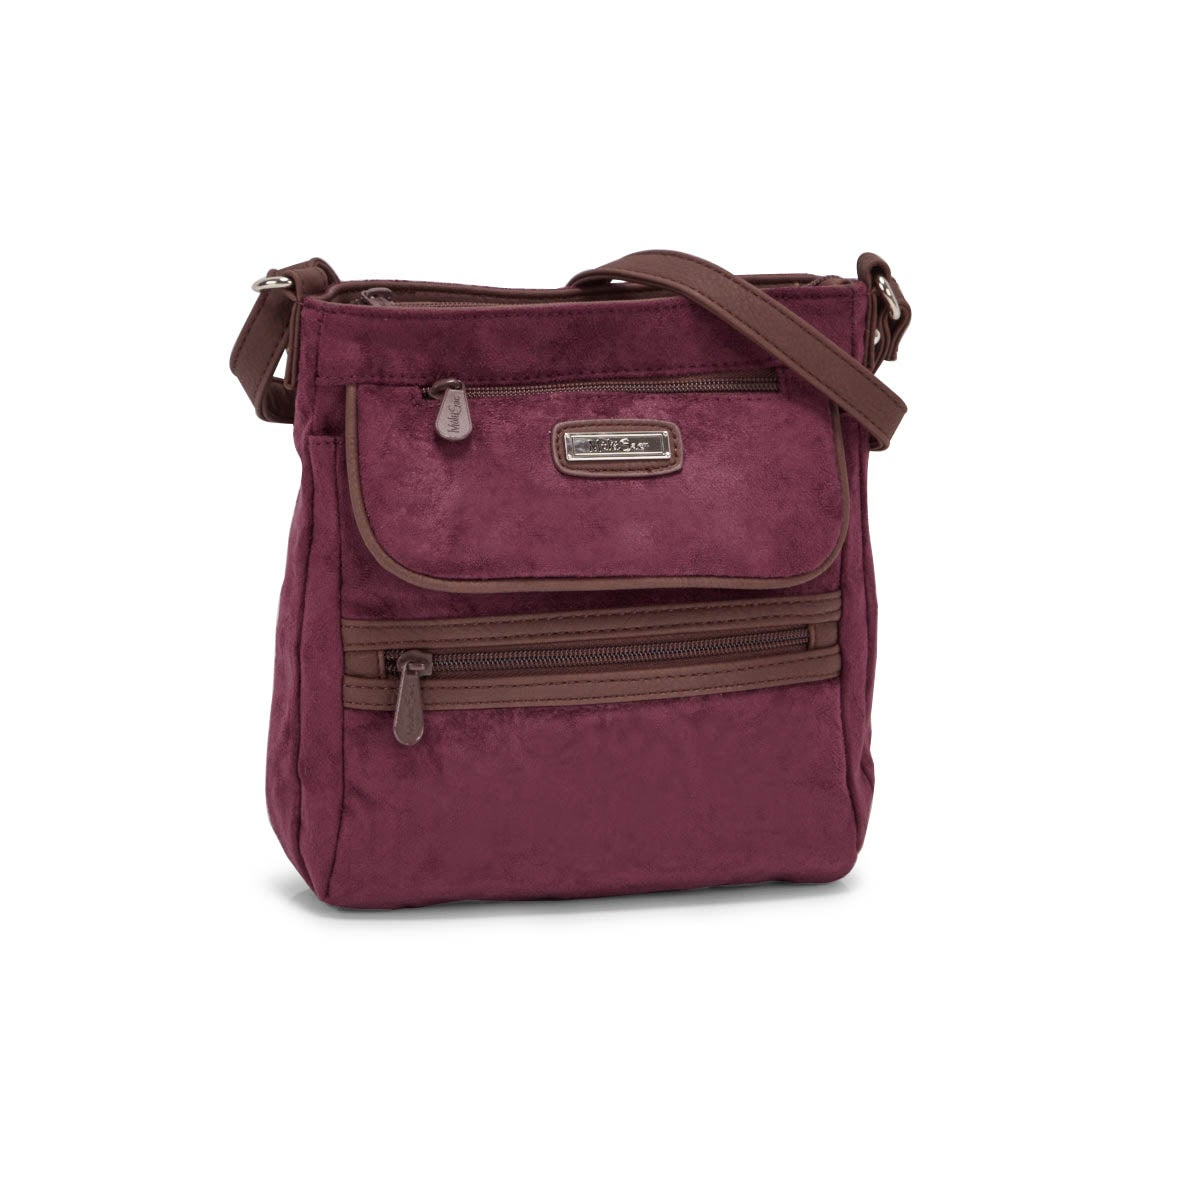 Lds Element royal purple cross body